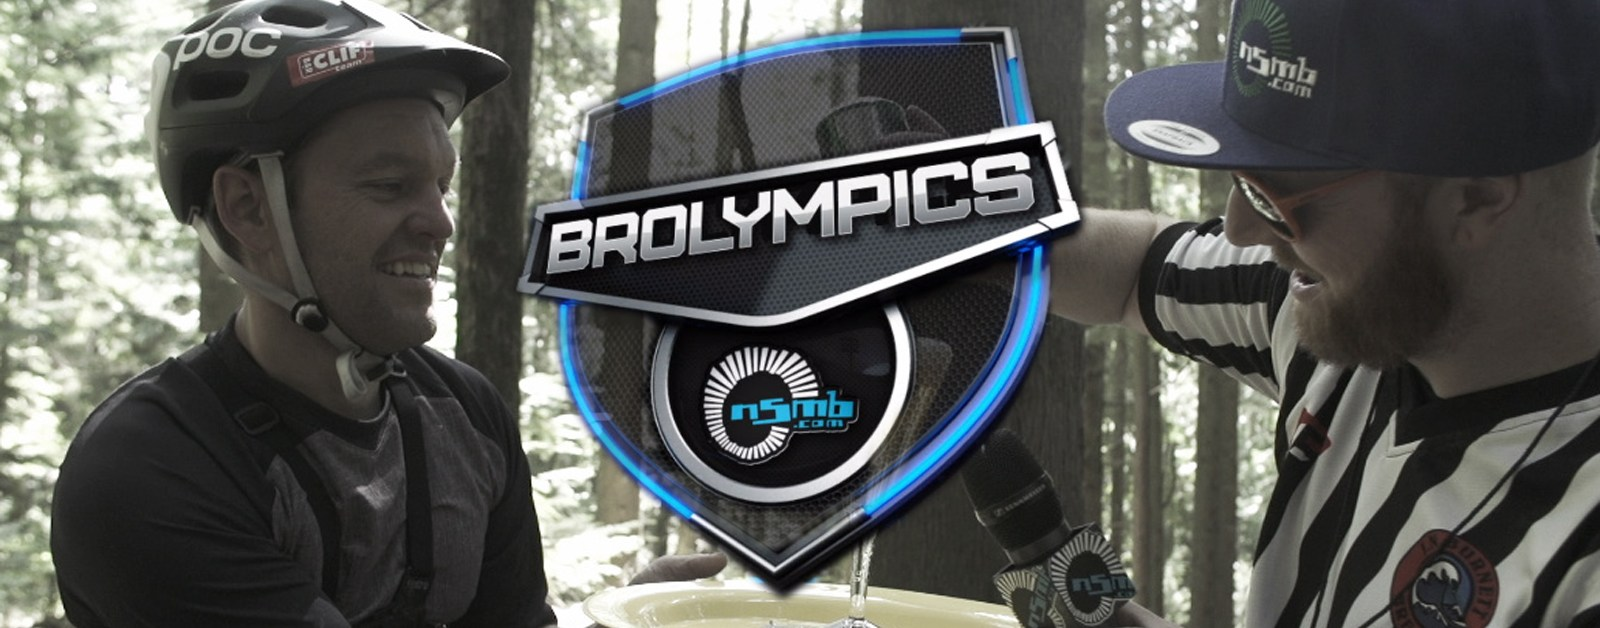 brolympic_banner4